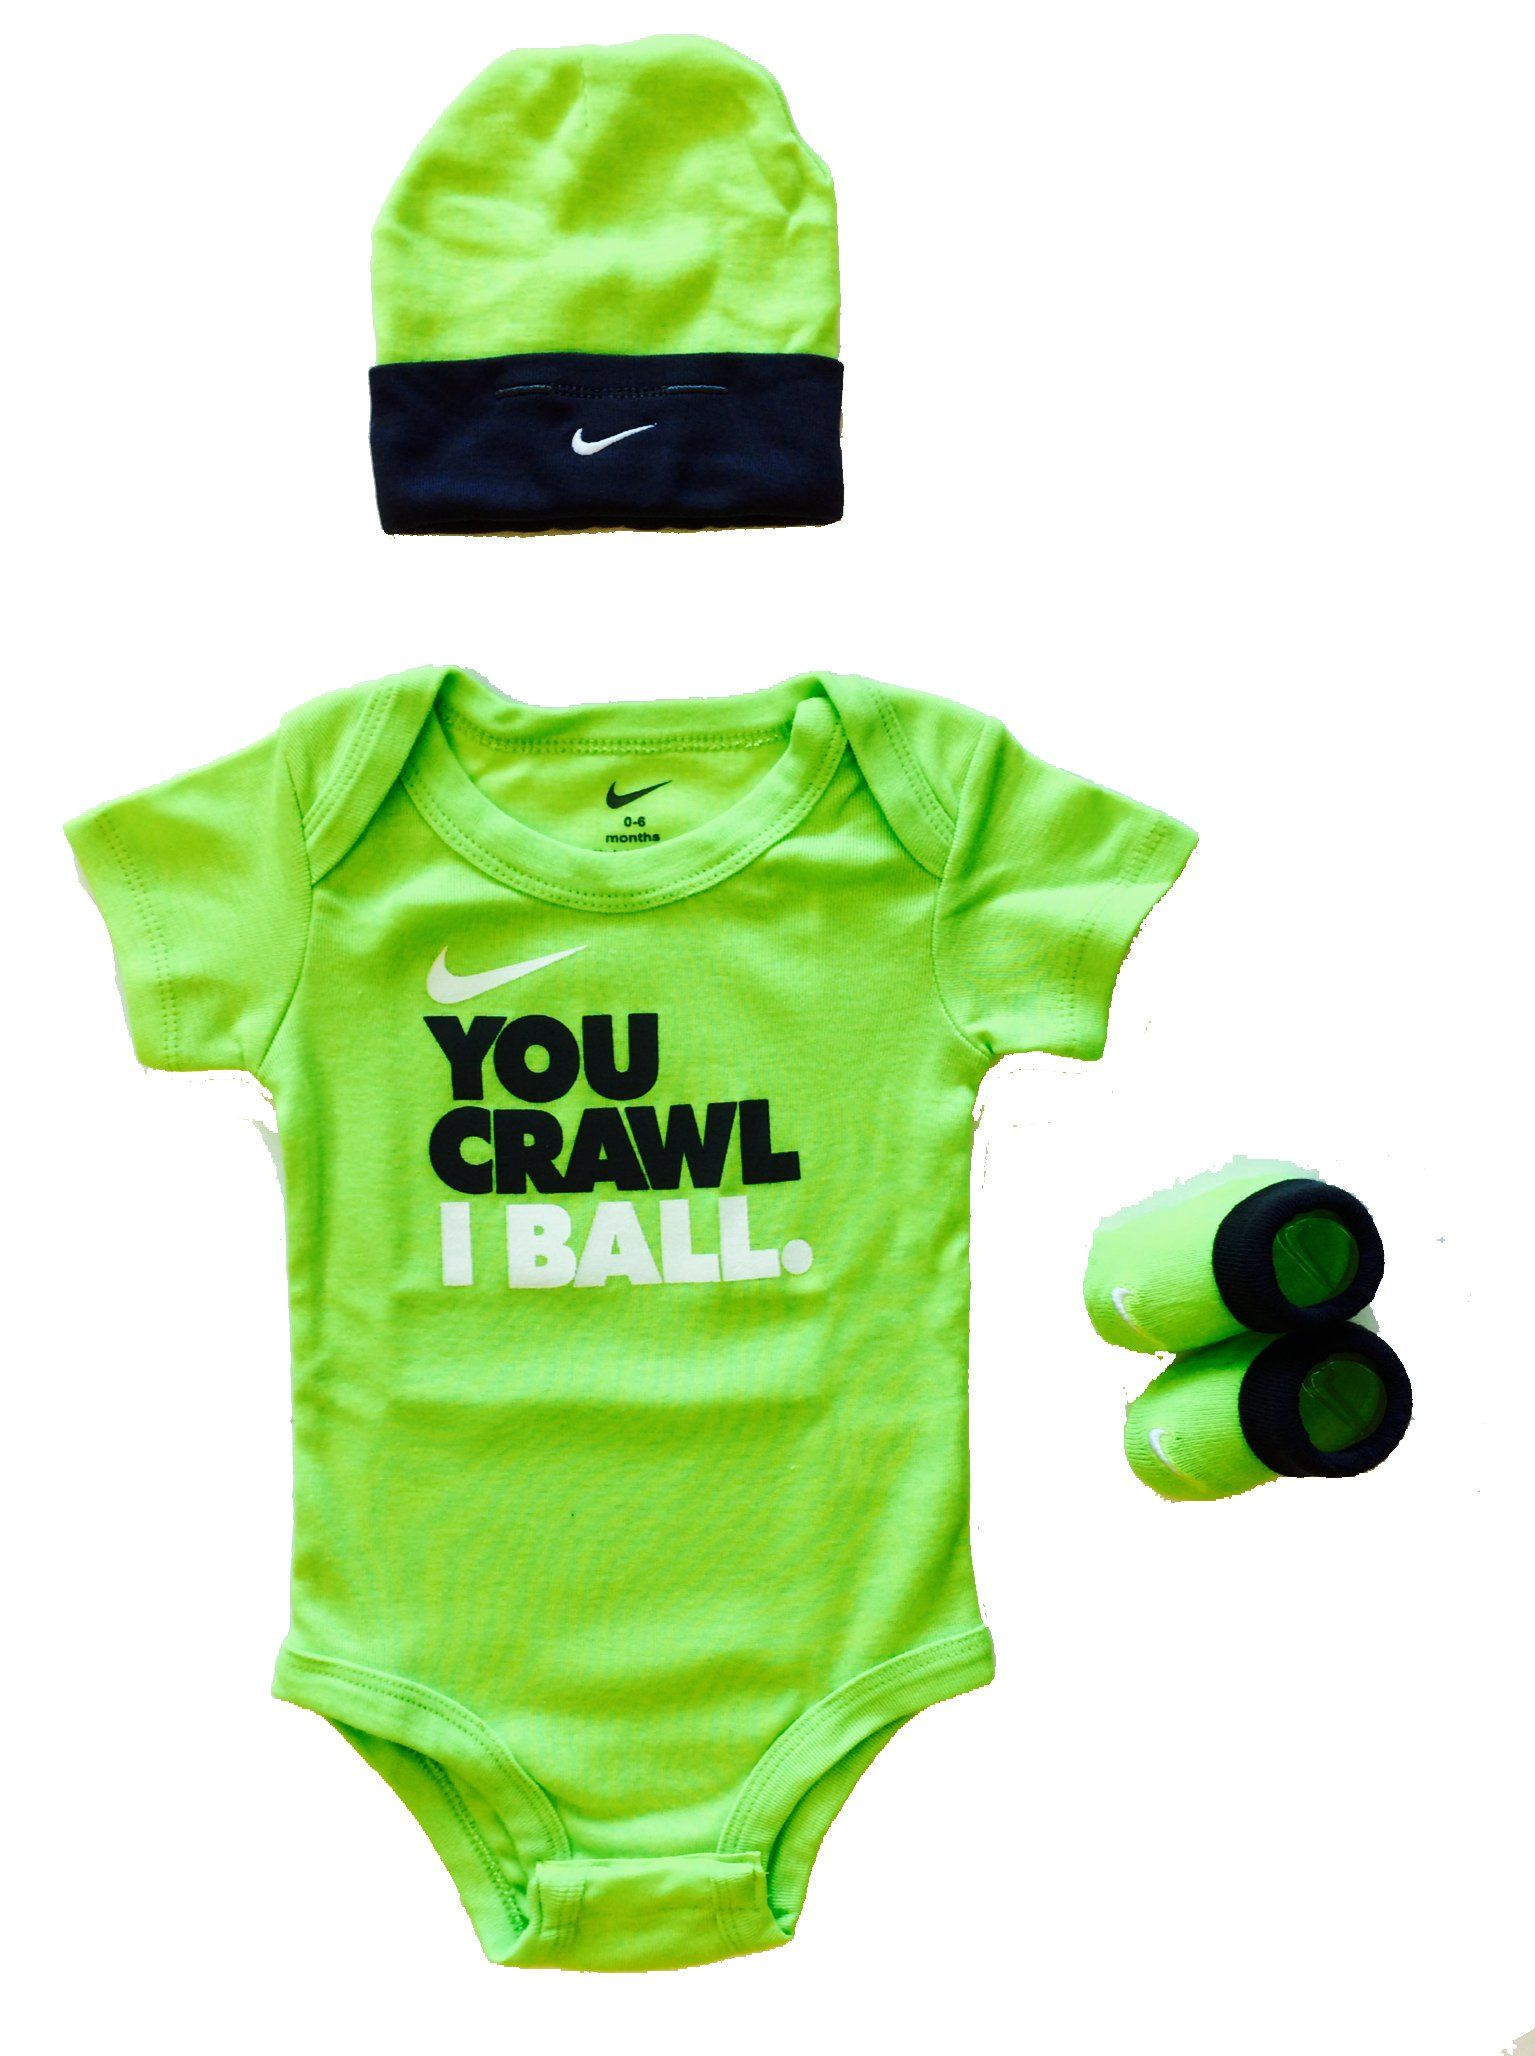 Nike Baby Clothes You Crawl I Ball 3 Piece Set (0-6m)